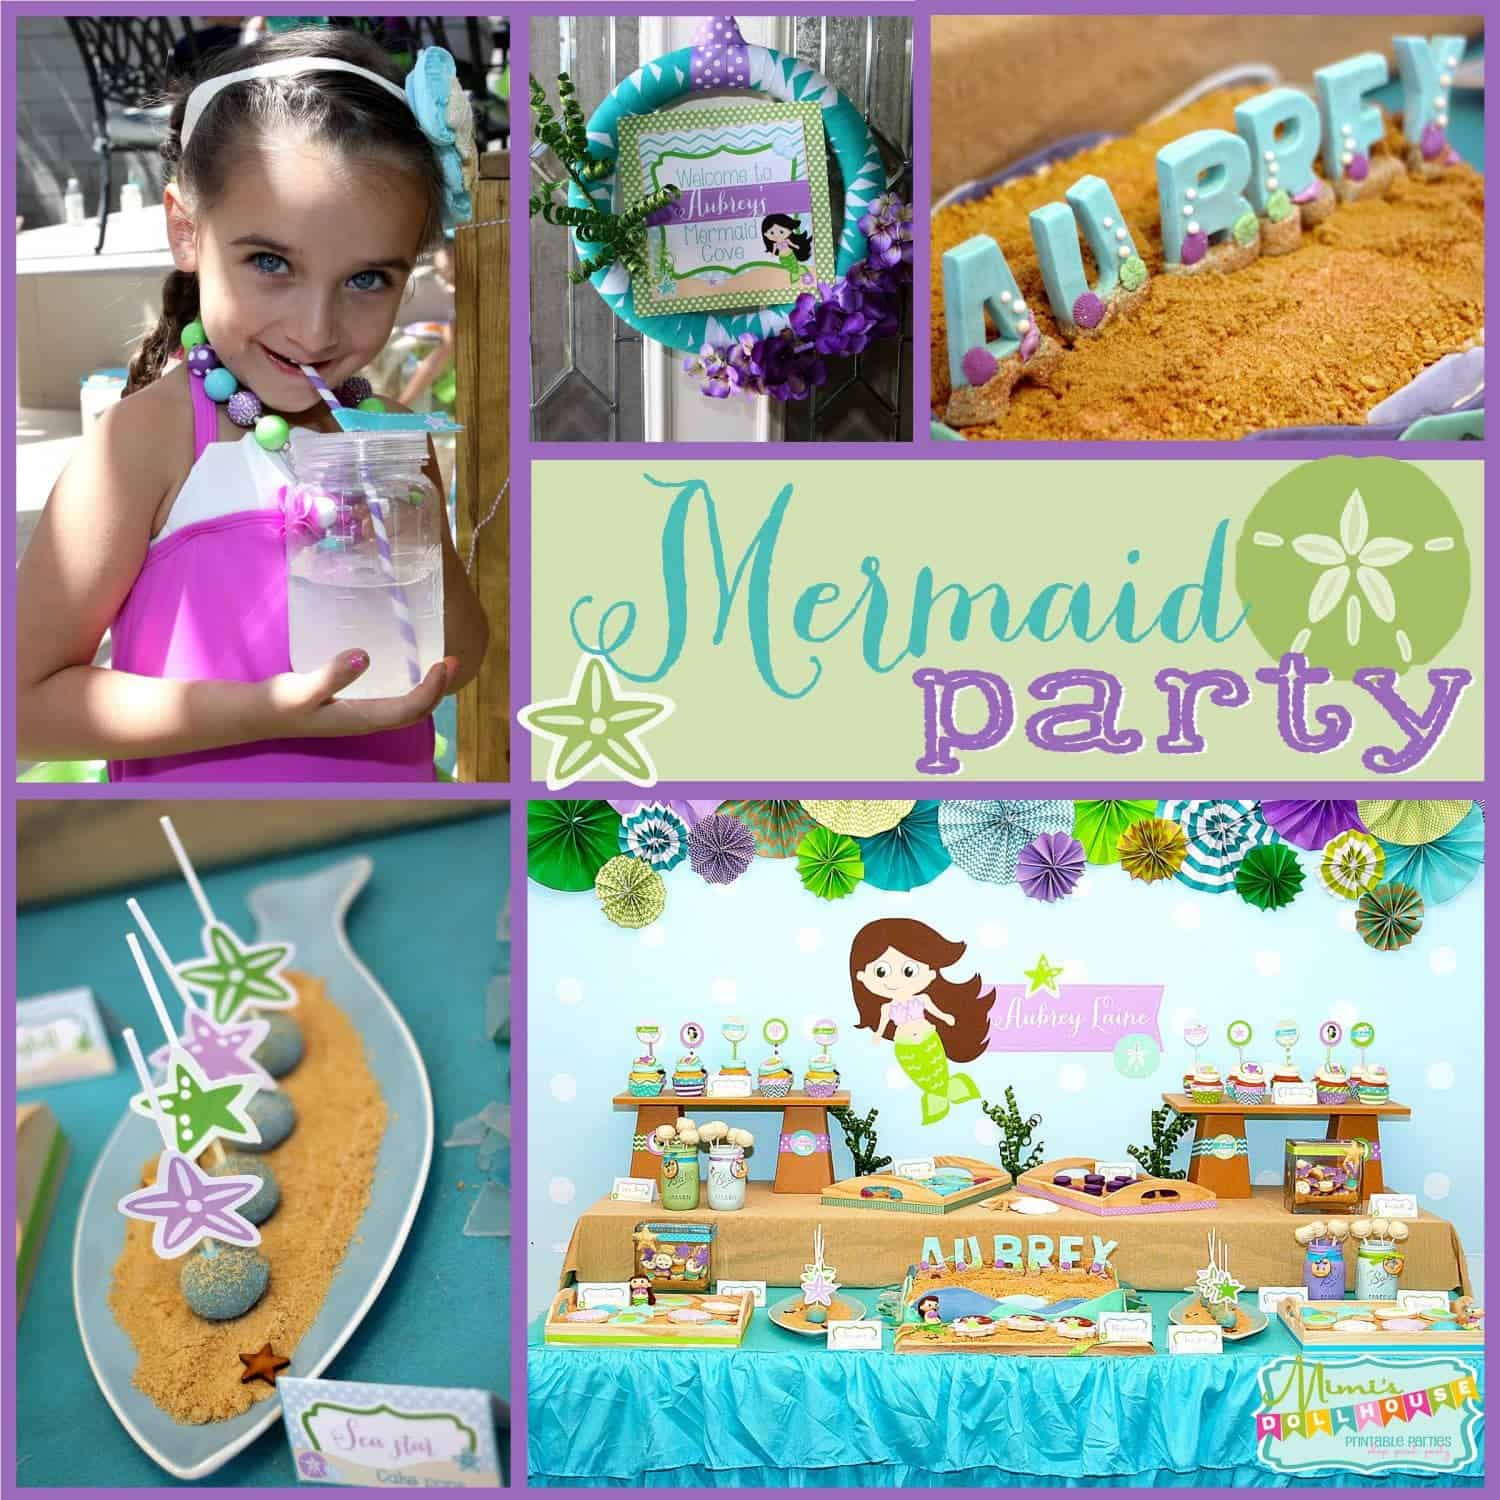 Mermaid Party: Aubrey's Chic Little Mermaid Party